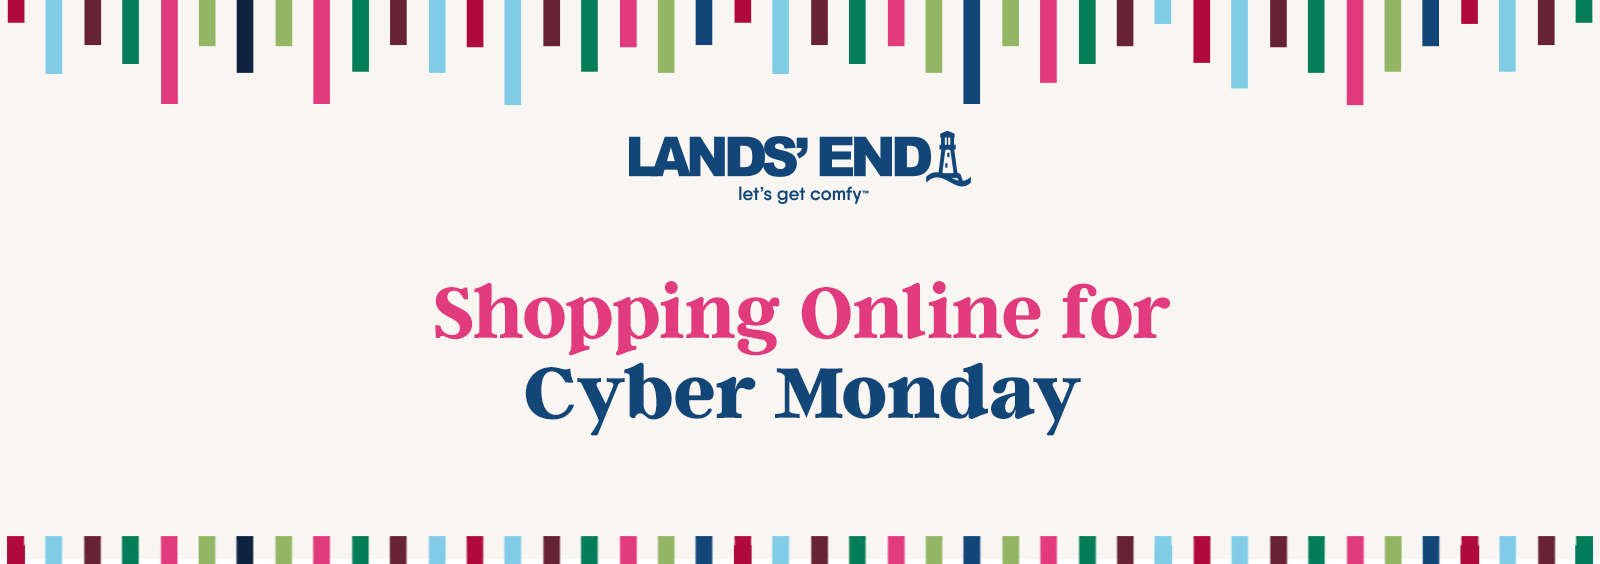 Knock Out Your Entire Christmas Shopping List on Cyber Monday